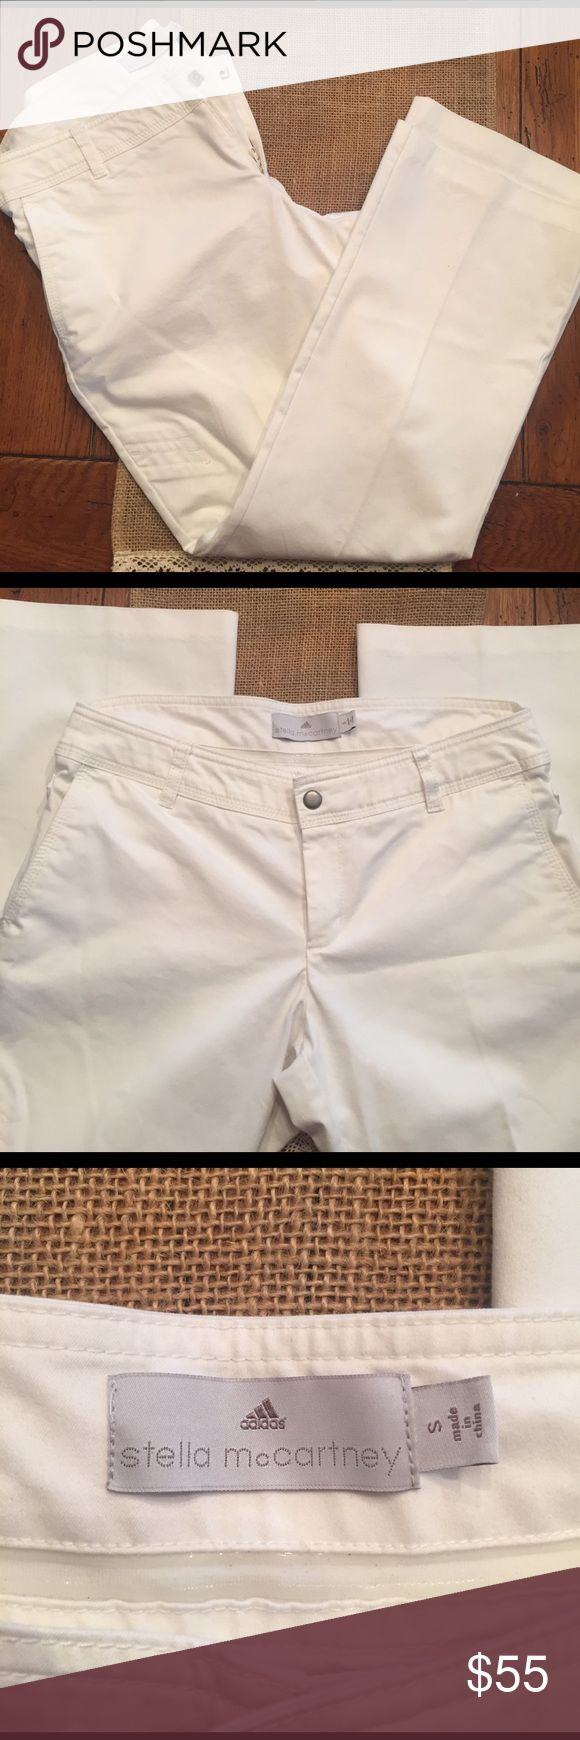 Stella McCartney Adidas white cropped pant Perfect condition and so cute. Stella McCartney for Adidas white cropped pant with adjustable wait and zipper back pockets. 55% cotton 41% polyester 4% spandex Adidas by Stella McCartney Pants Capris